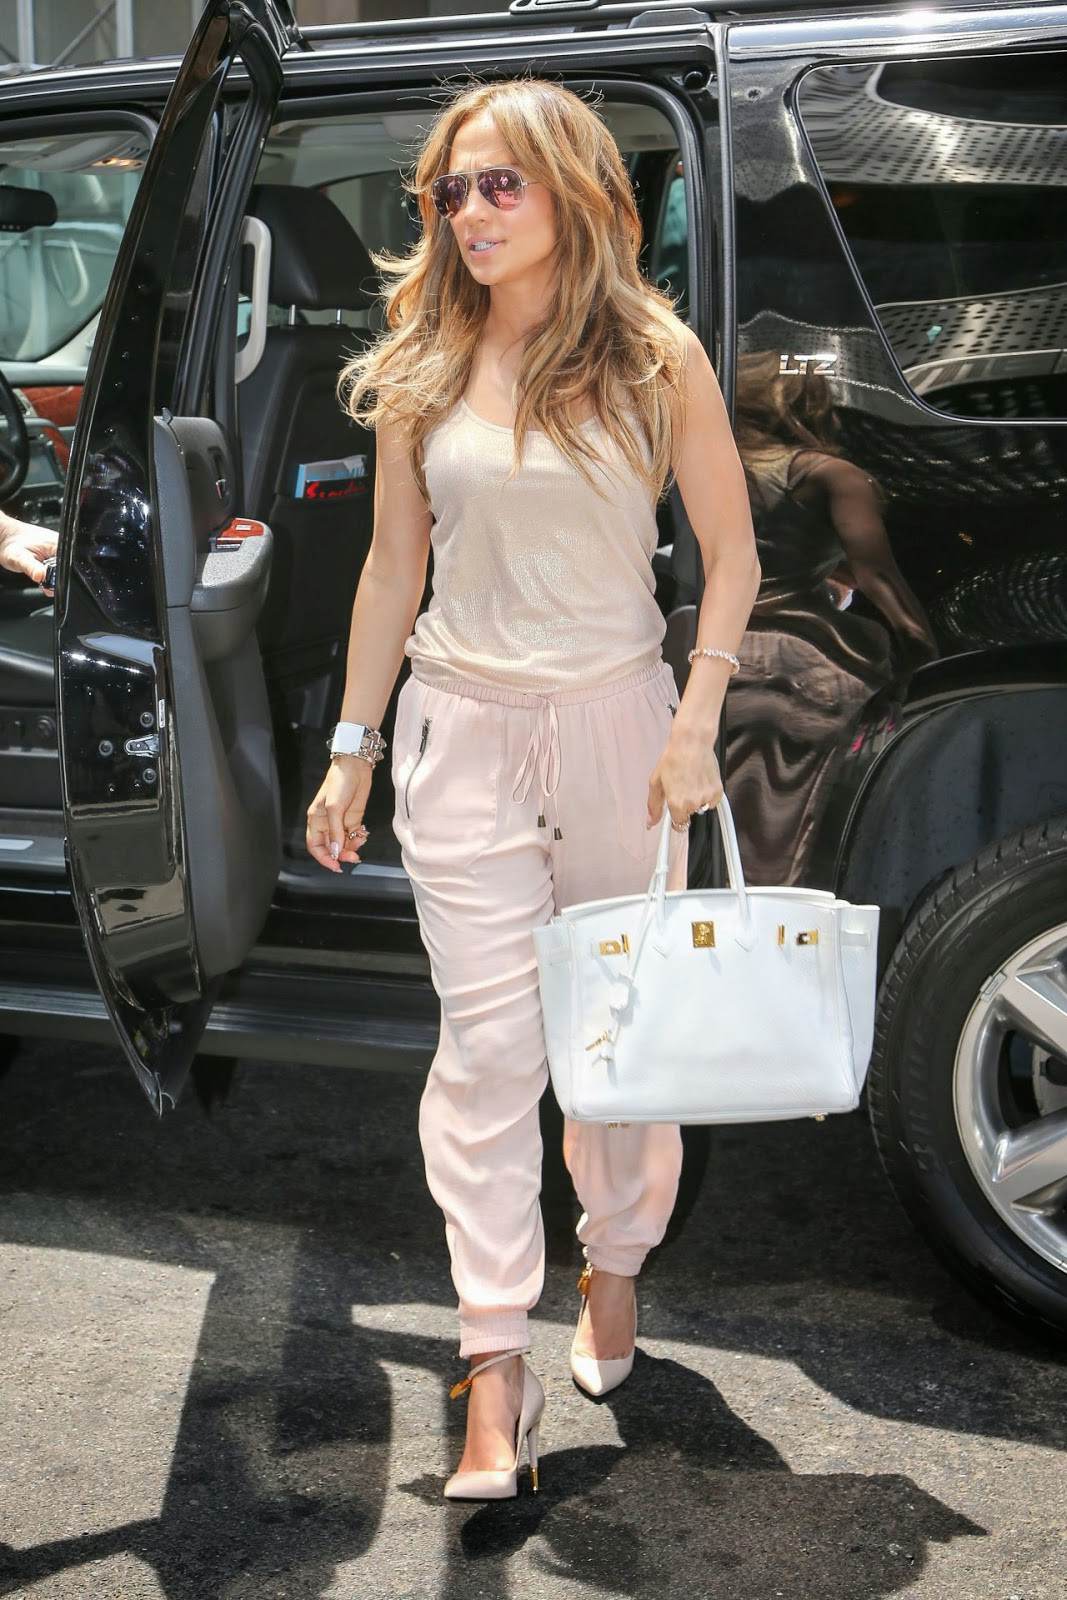 51816c0f2406 Jennifer Lopez was spotted out in NYC wearing Tom Ford python lock  pointed-toe pumps. They feature nude leather with a gold padlock  embellished wrap-around ...